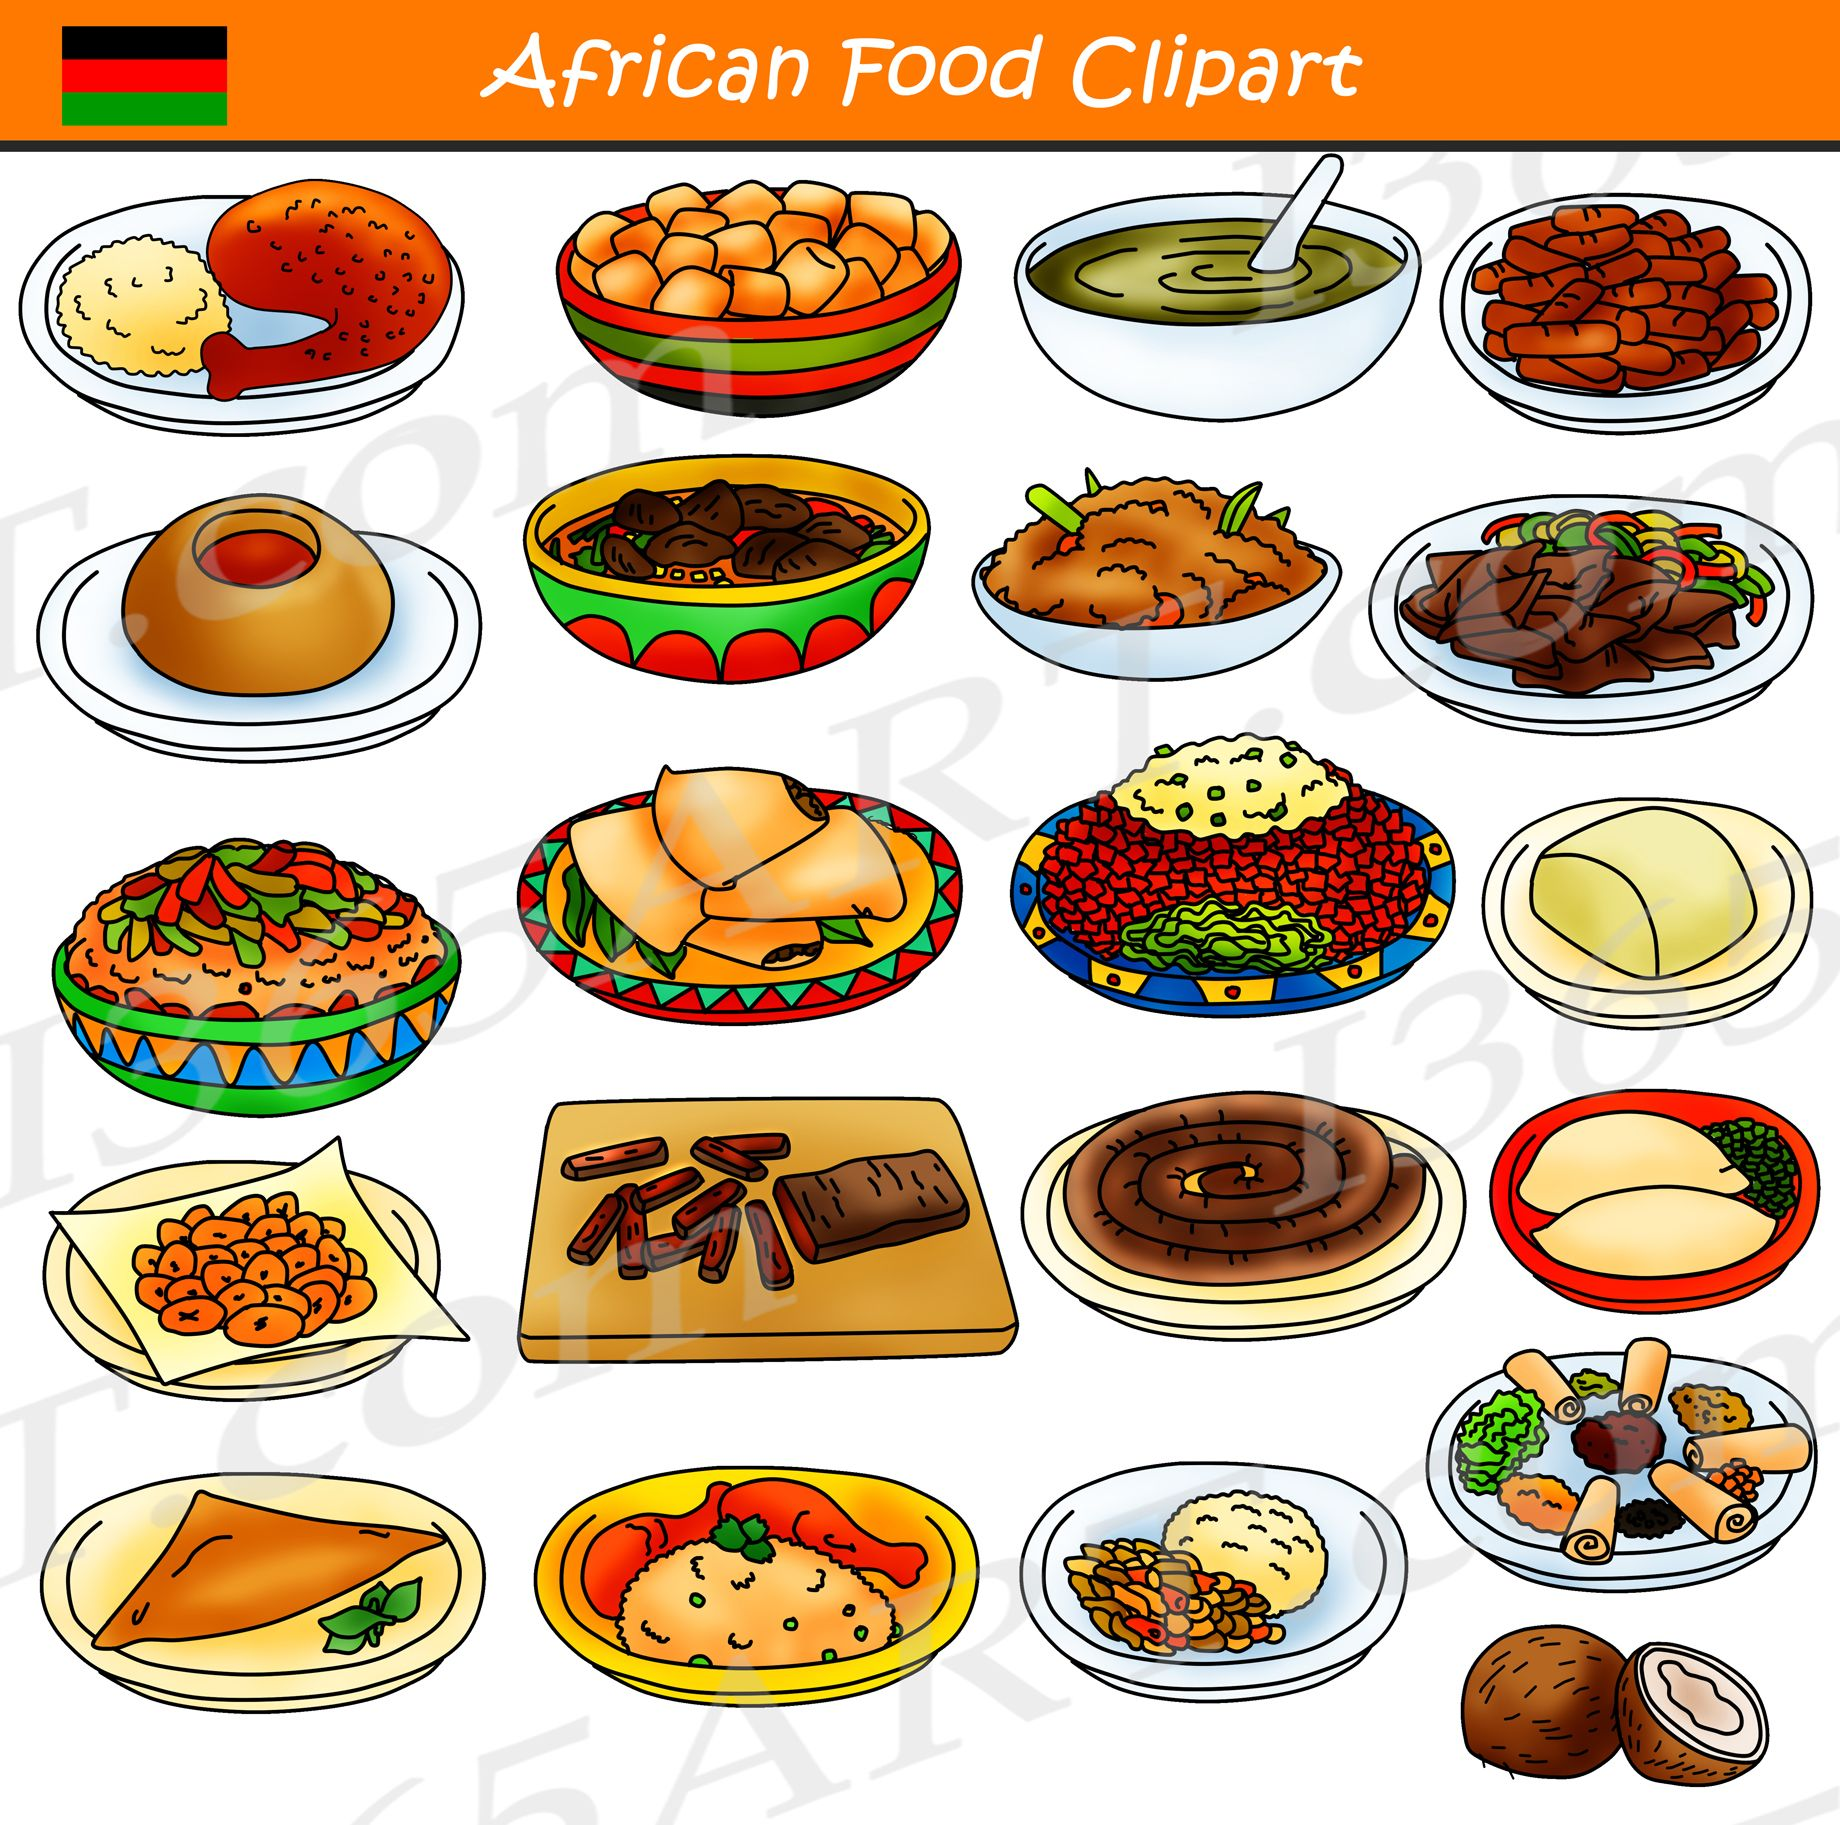 African Food Clipart Commercial Download in 2019.